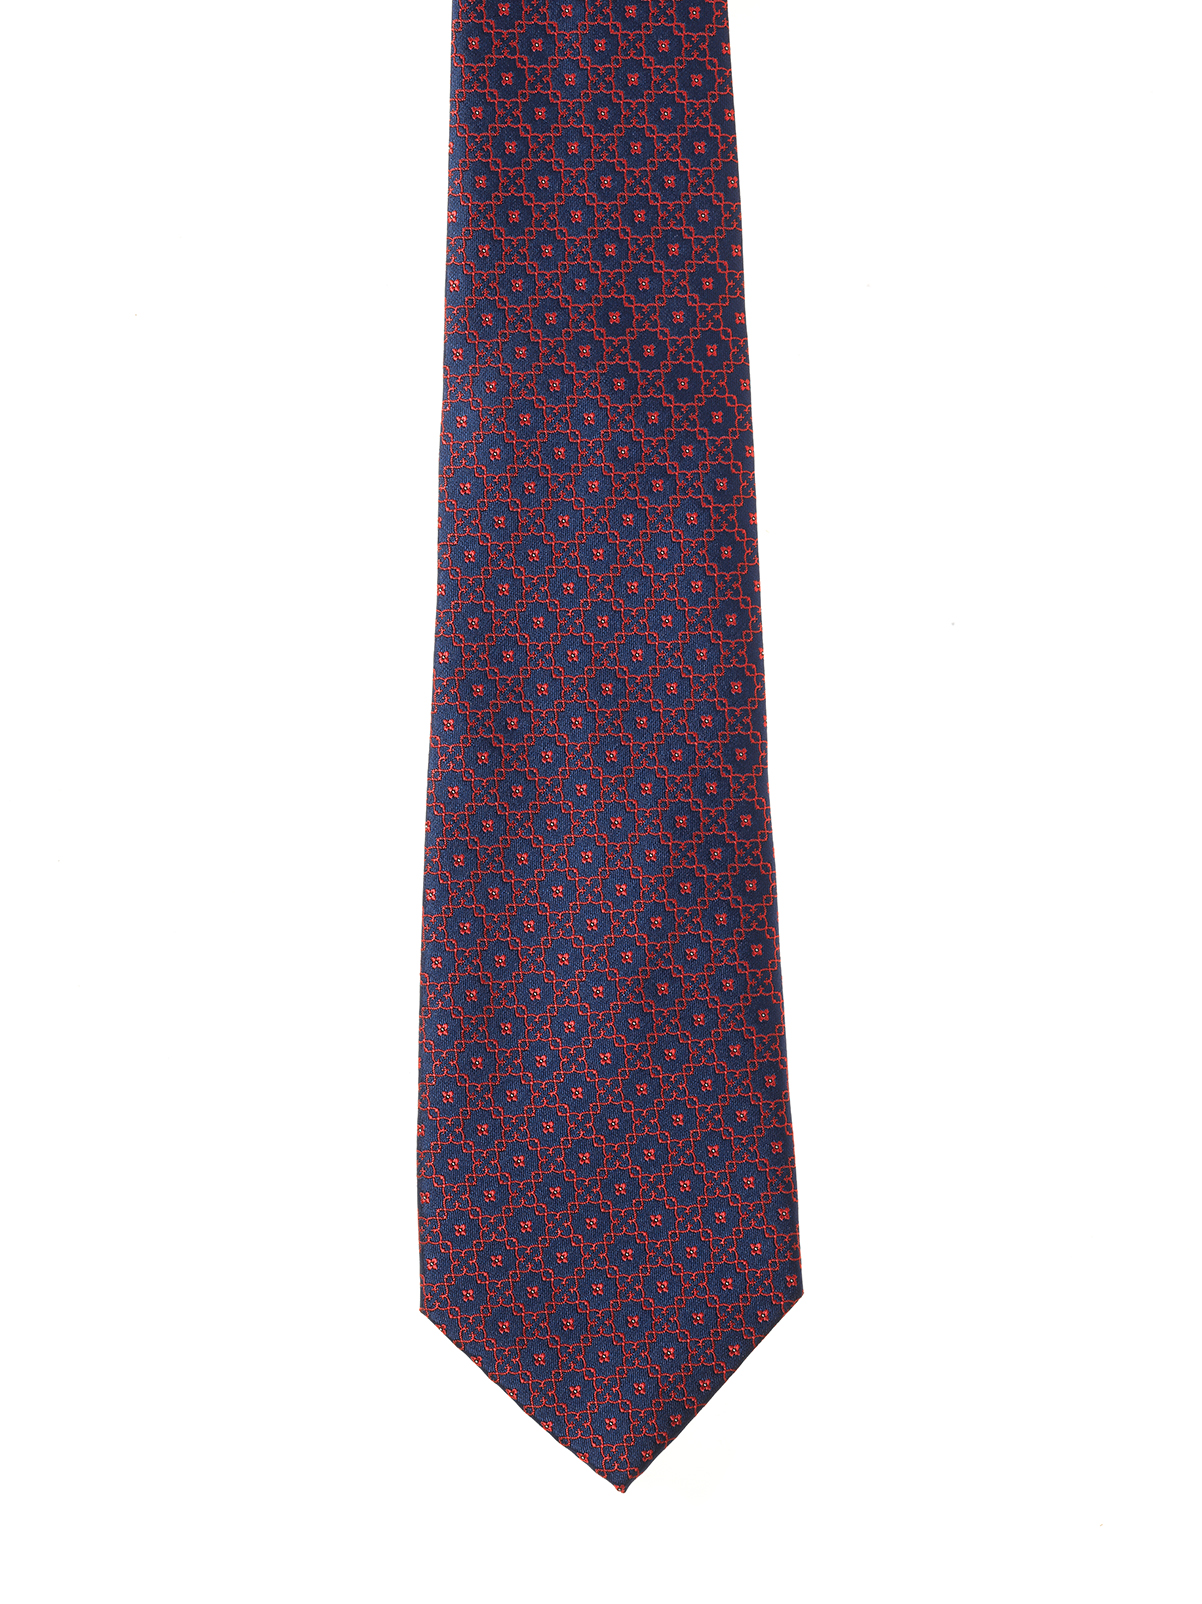 KPTies Mens Neckties Phipps